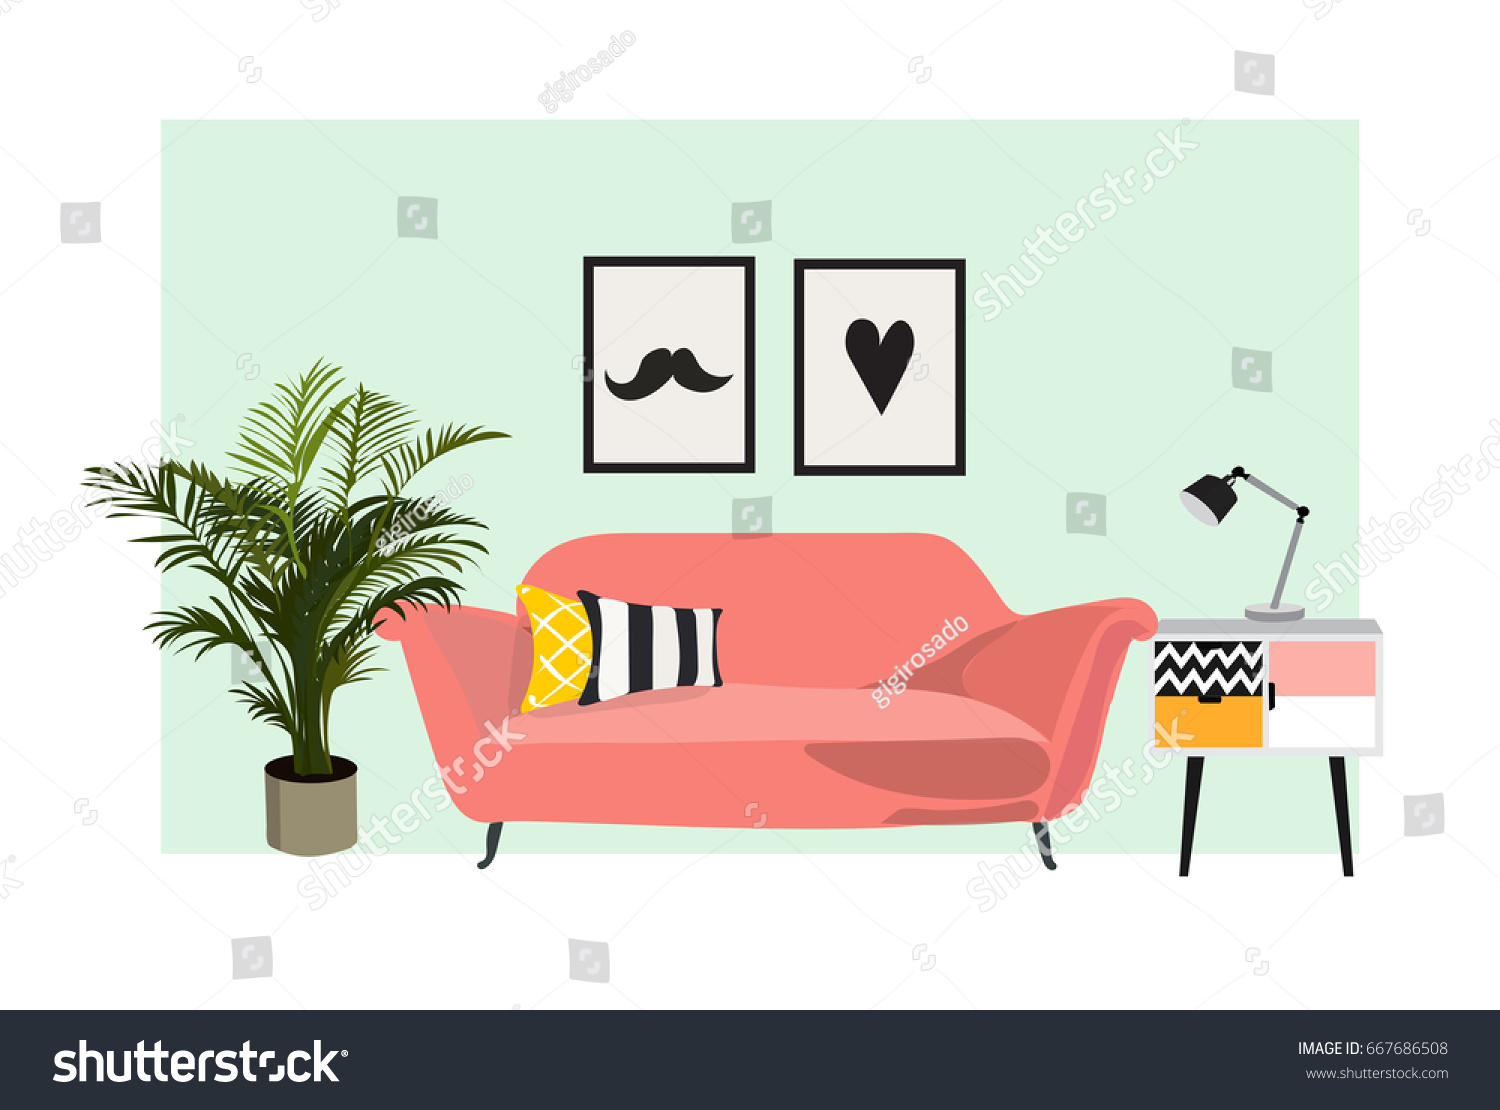 Interior design vector illustration modern living stock for Interior design images vector